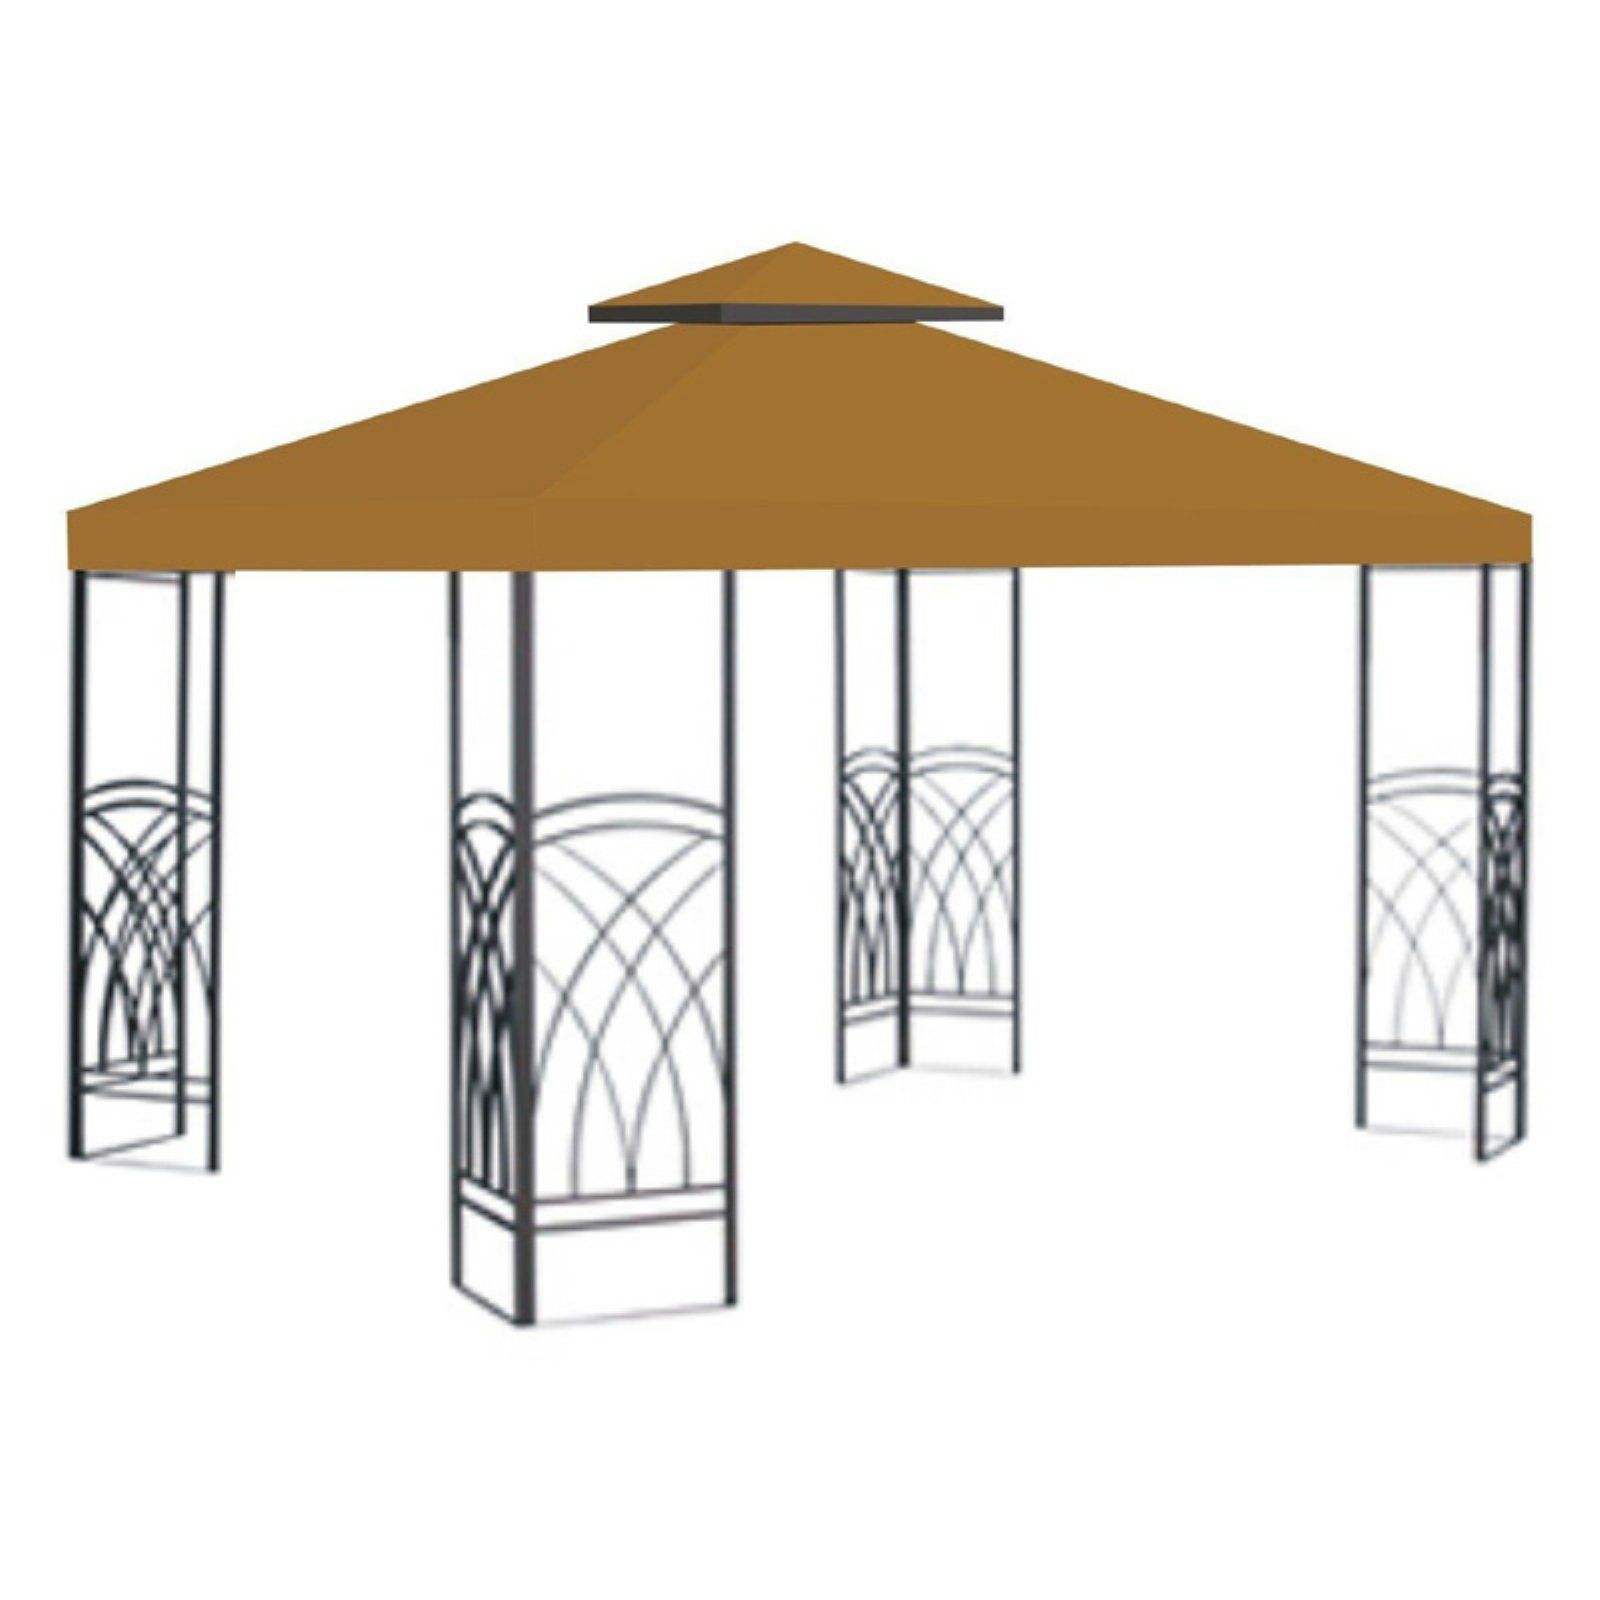 Sunrise 10 X 10 Ft Gazebo Replacement Double Tier Canopy Cover Gazebo Replacement Canopy Canopy Outdoor Replacement Canopy